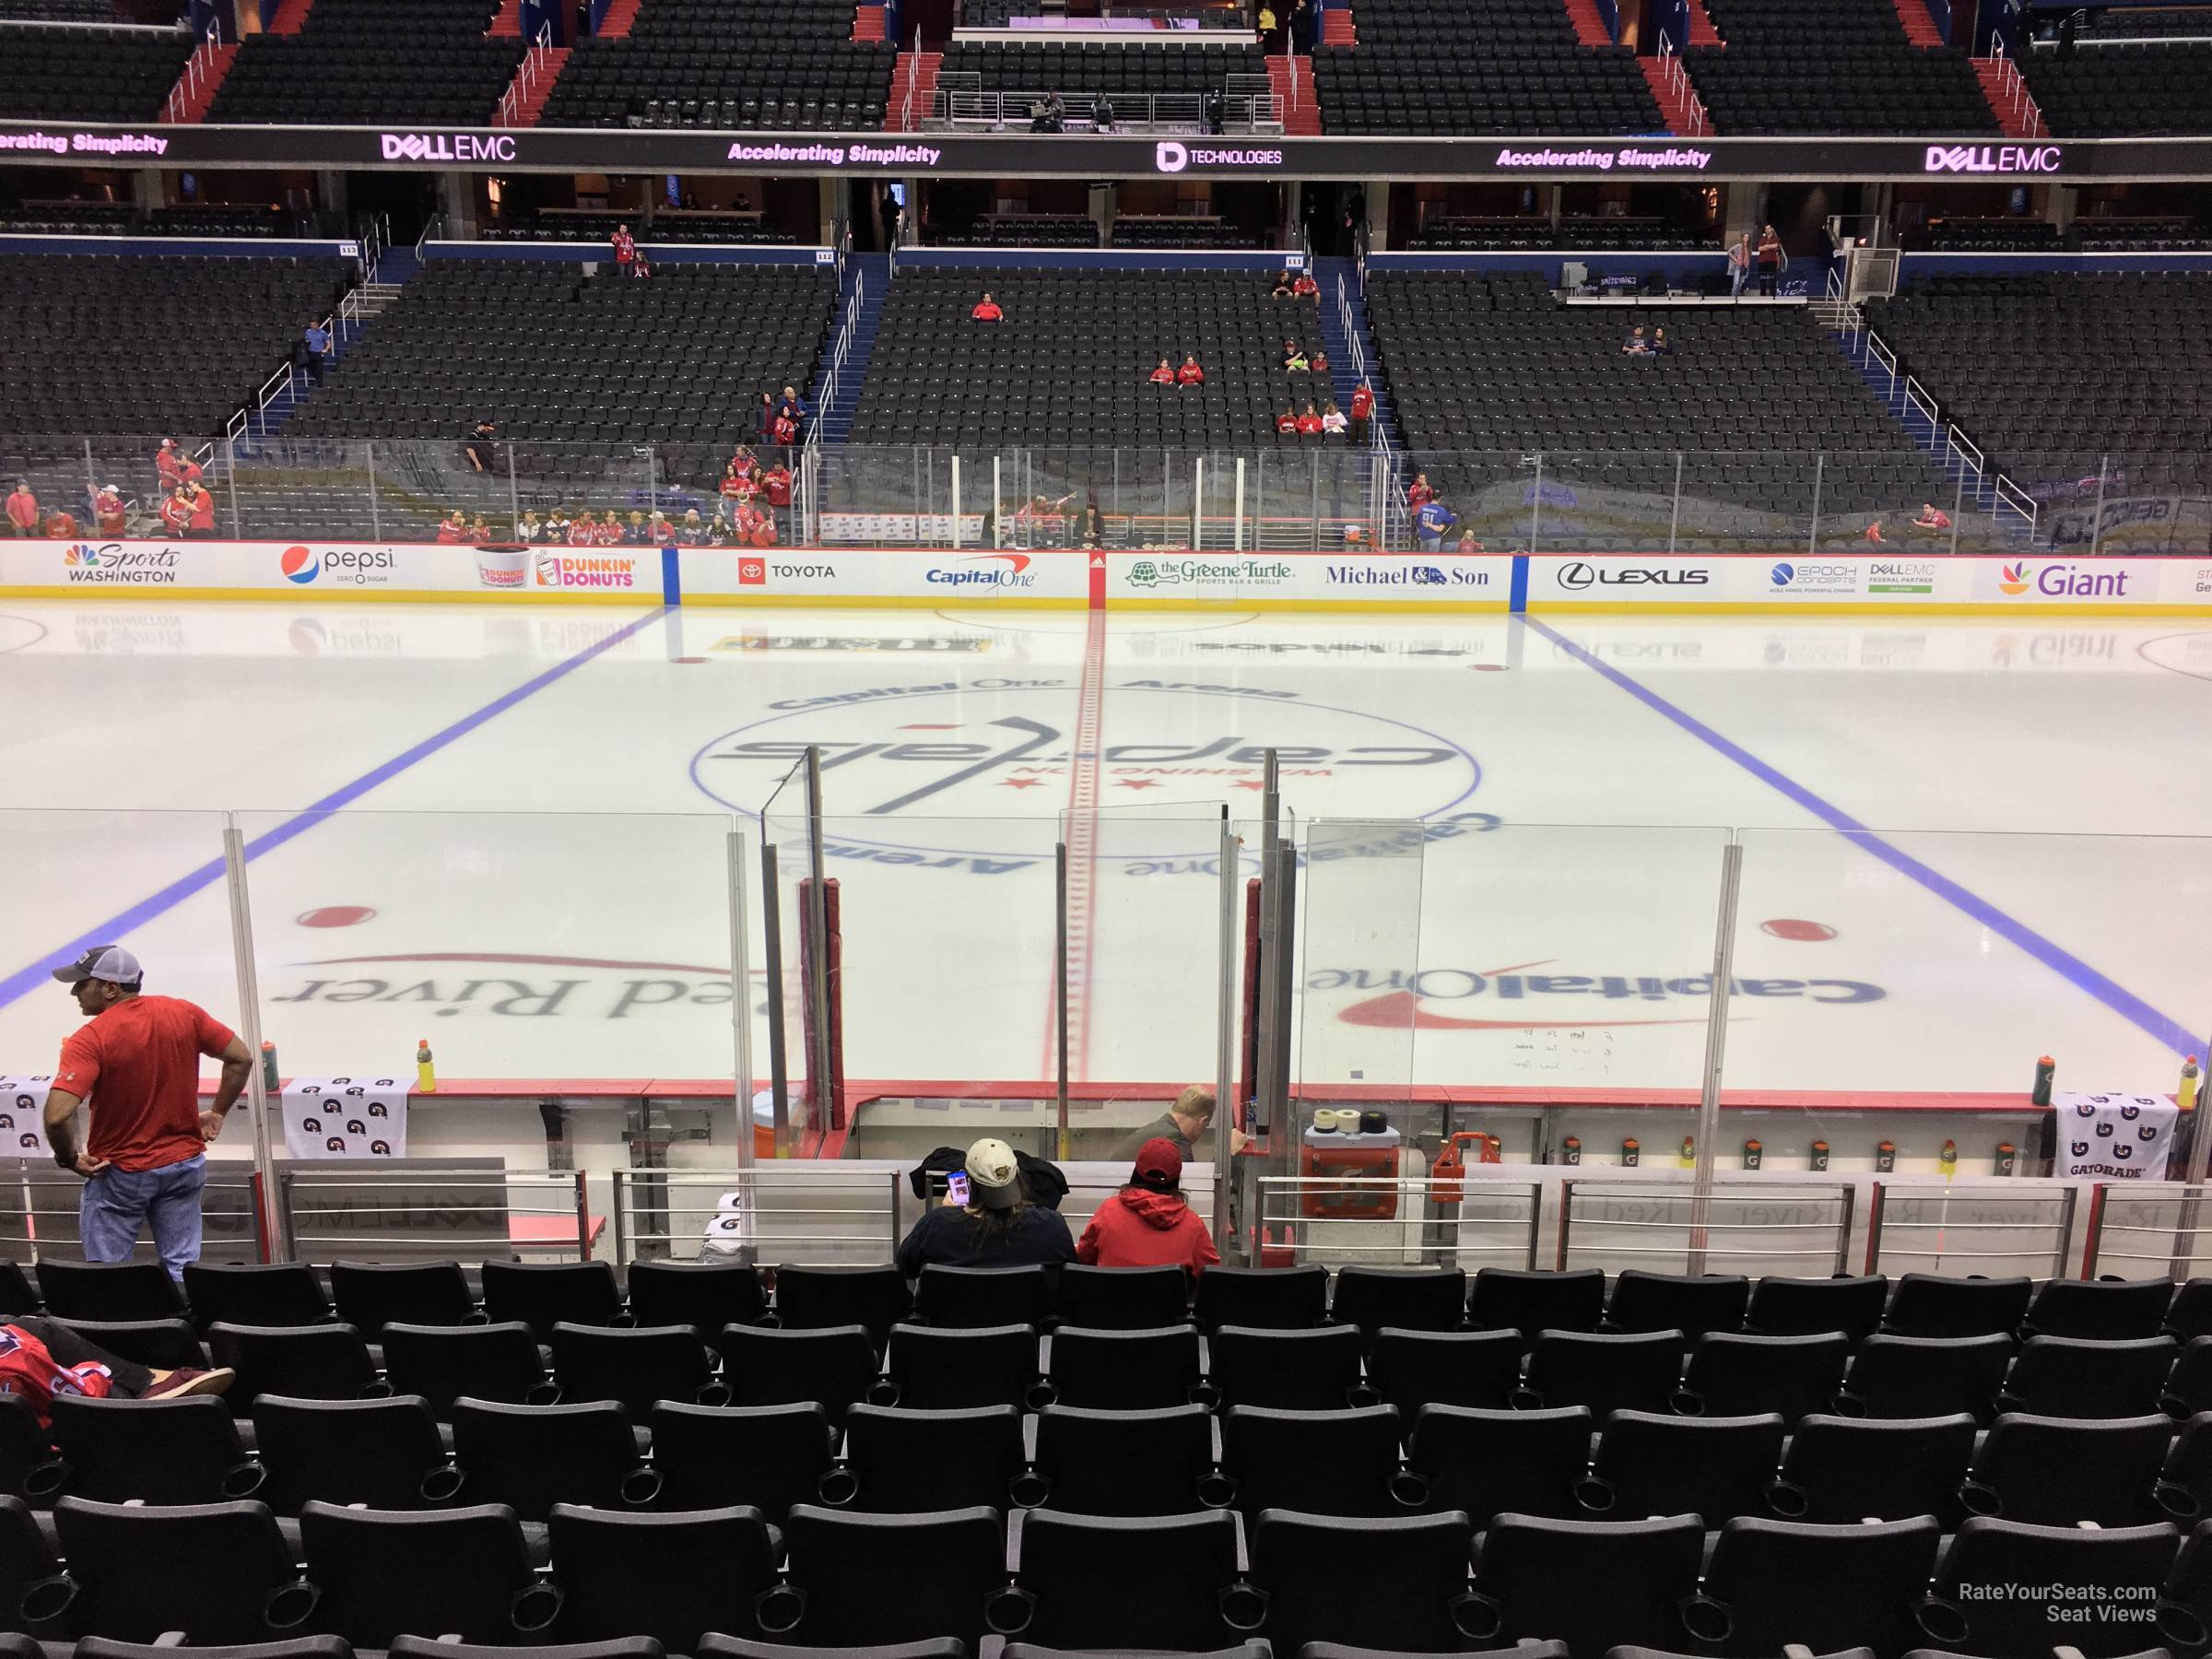 Section 100 seat view